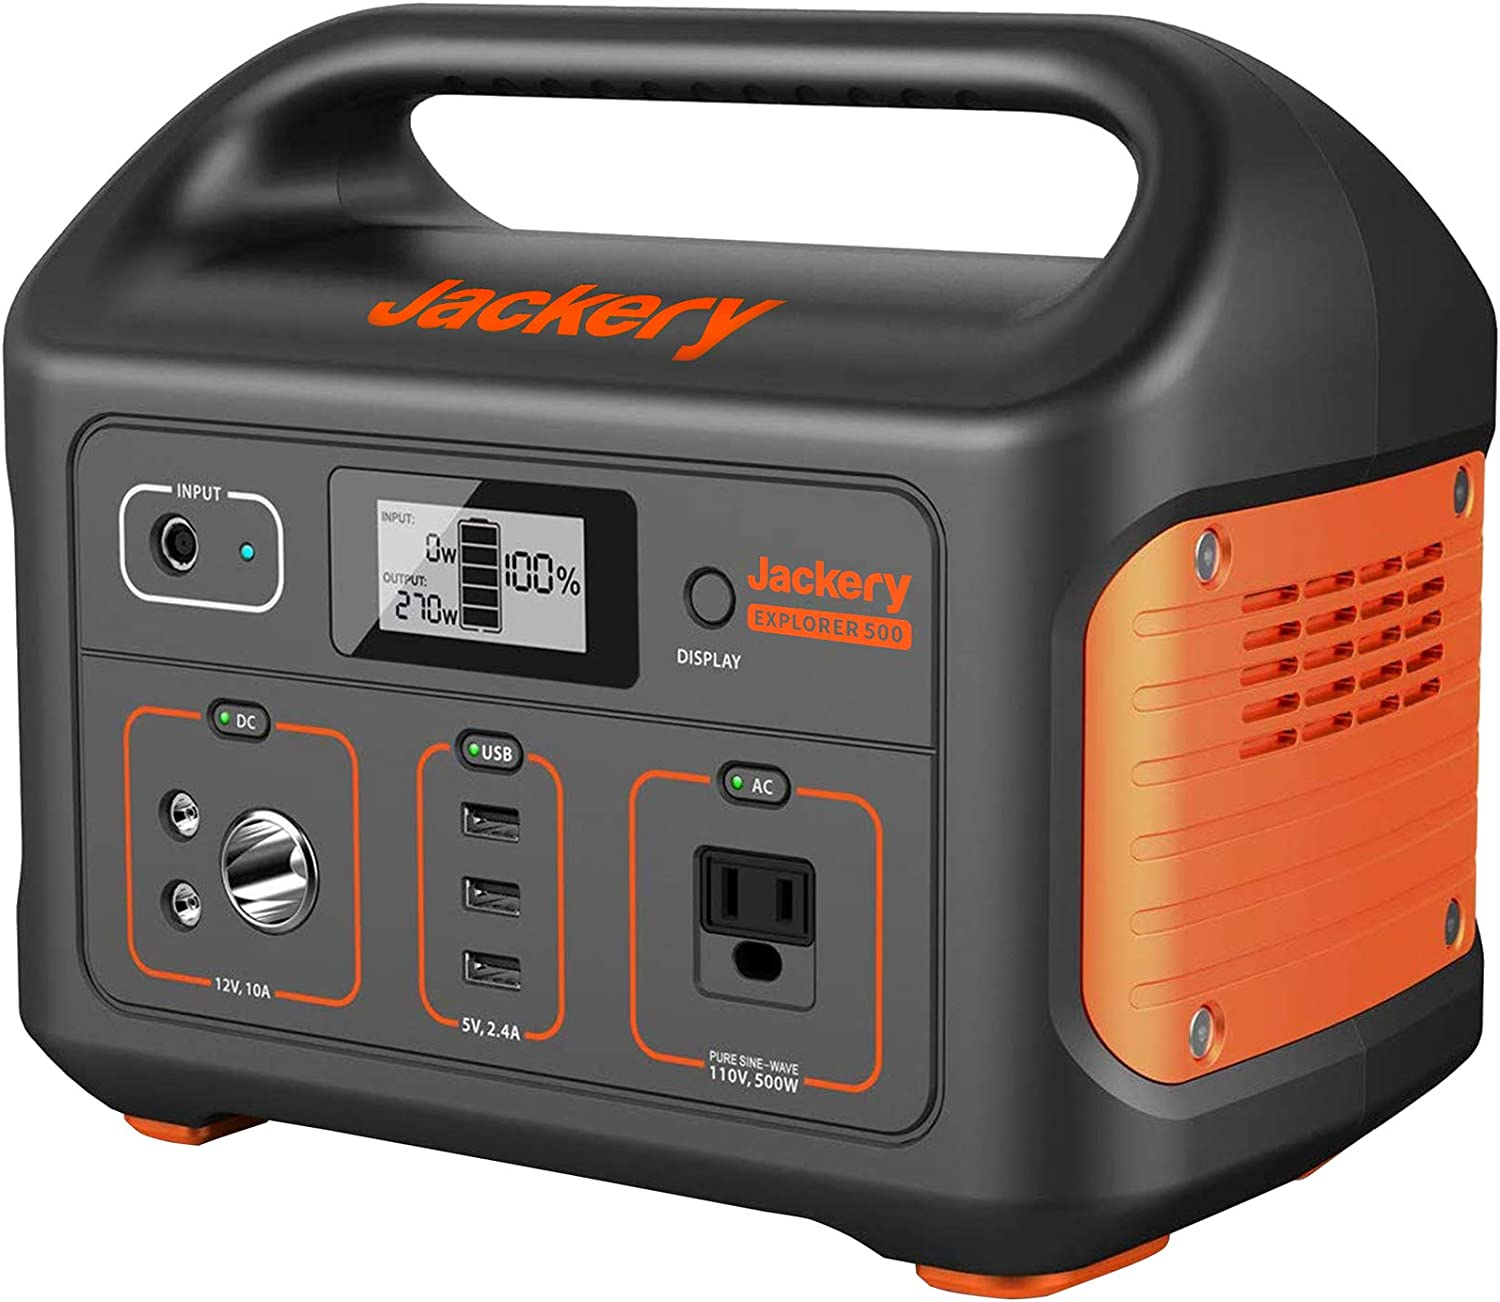 Jackery Portable Power Station Explorer 500, 518Wh Outdoor Solar Generator Mobile Lithium Battery Pack with 110V/500W AC Outlet (Solar Panel Optional) for Road Trip Camping, Outdoor Adventure : Garden & Outdoor